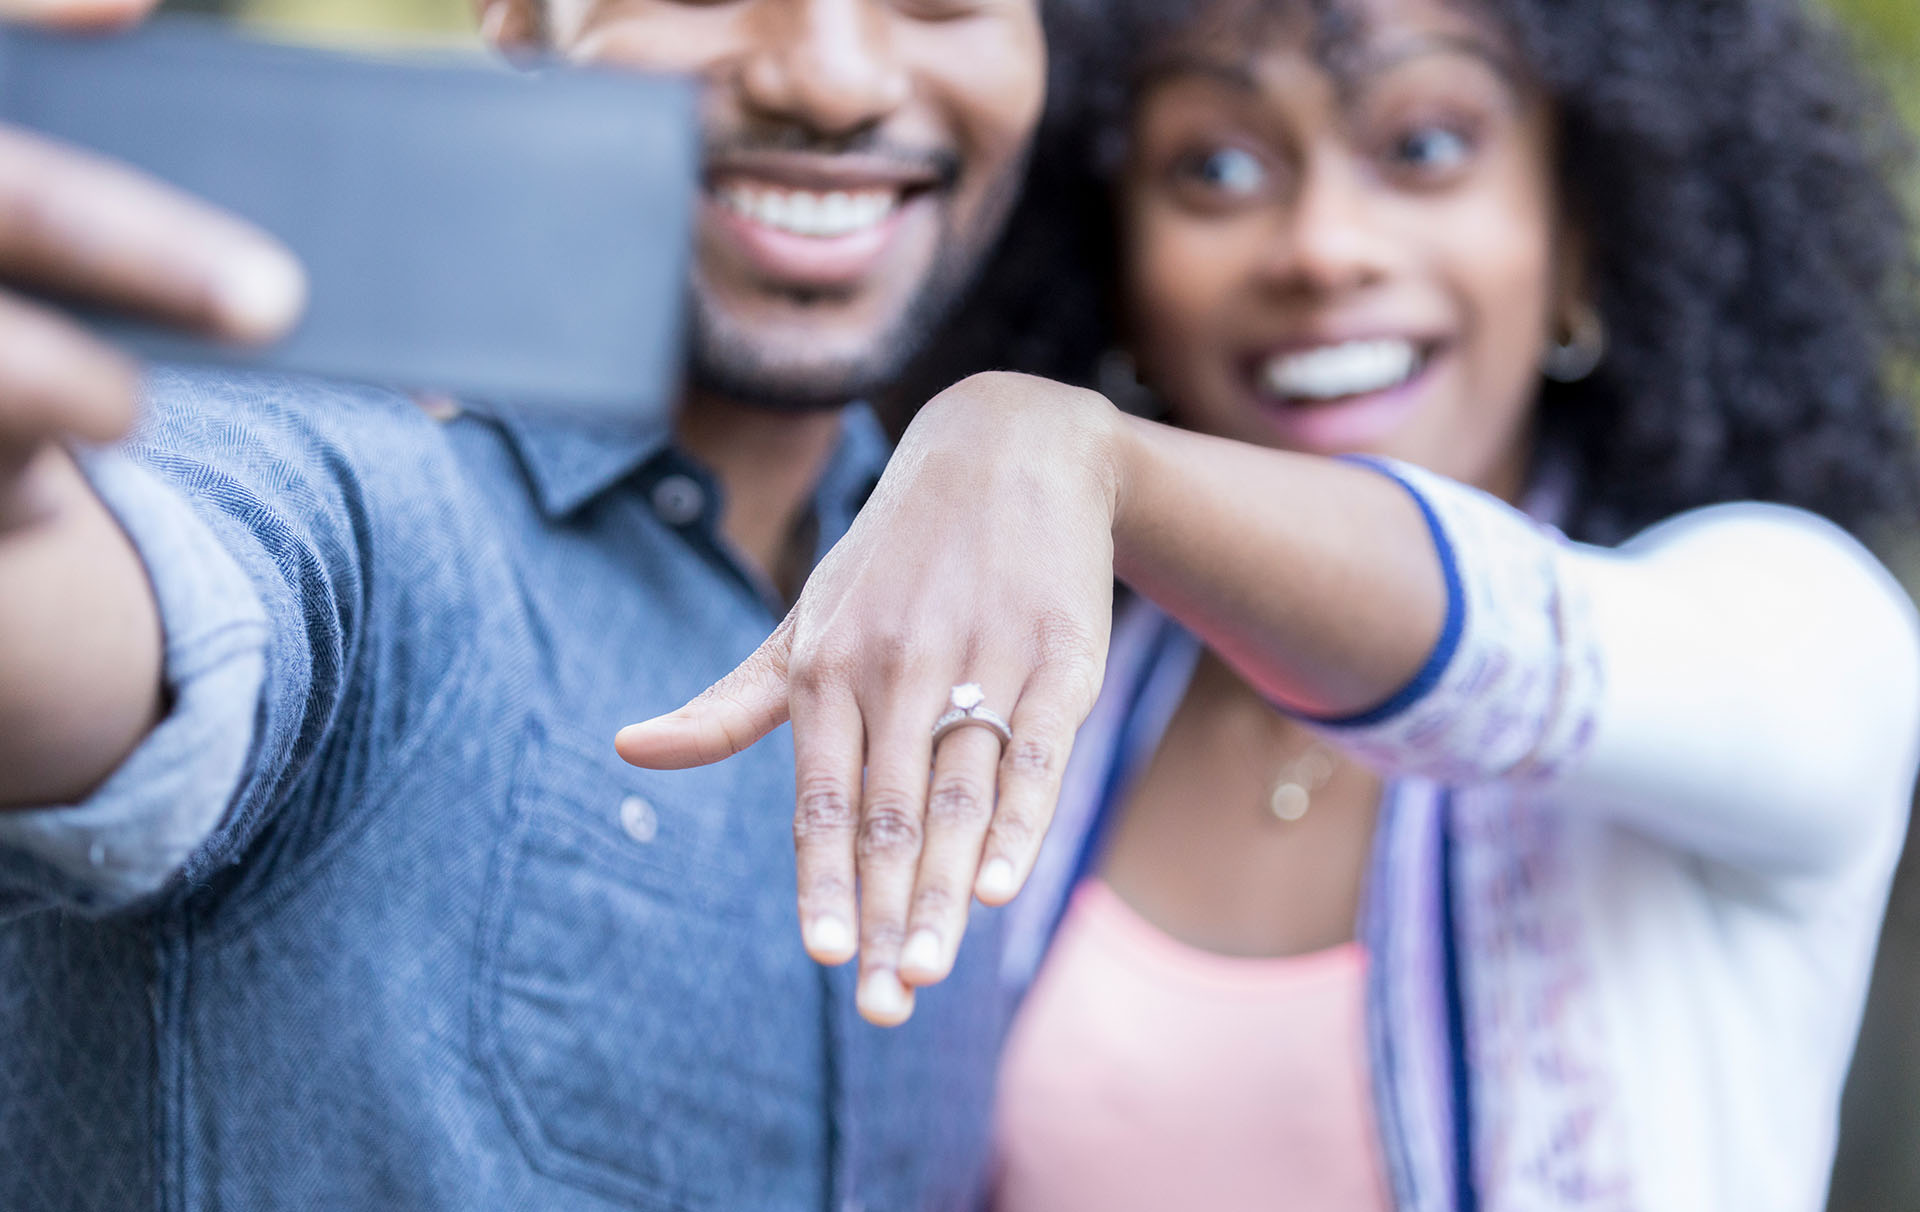 woman uses cousin's hand in engagement photo